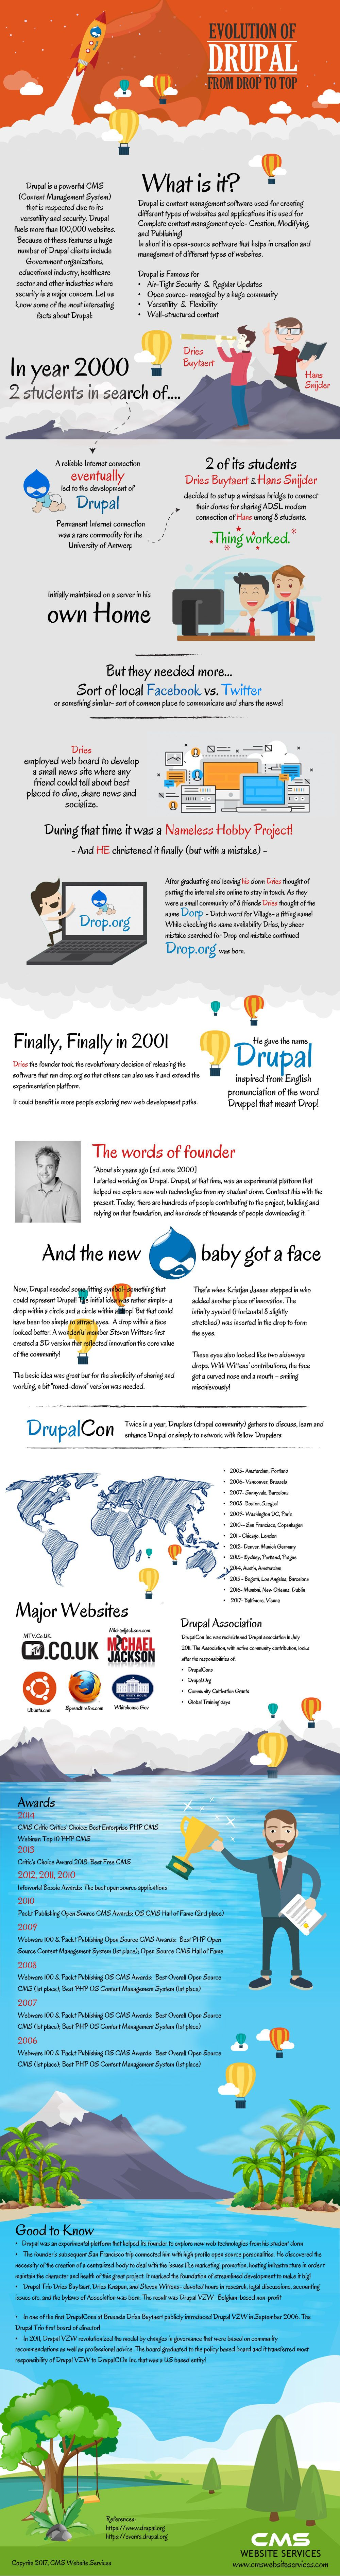 History Drupal Infographic